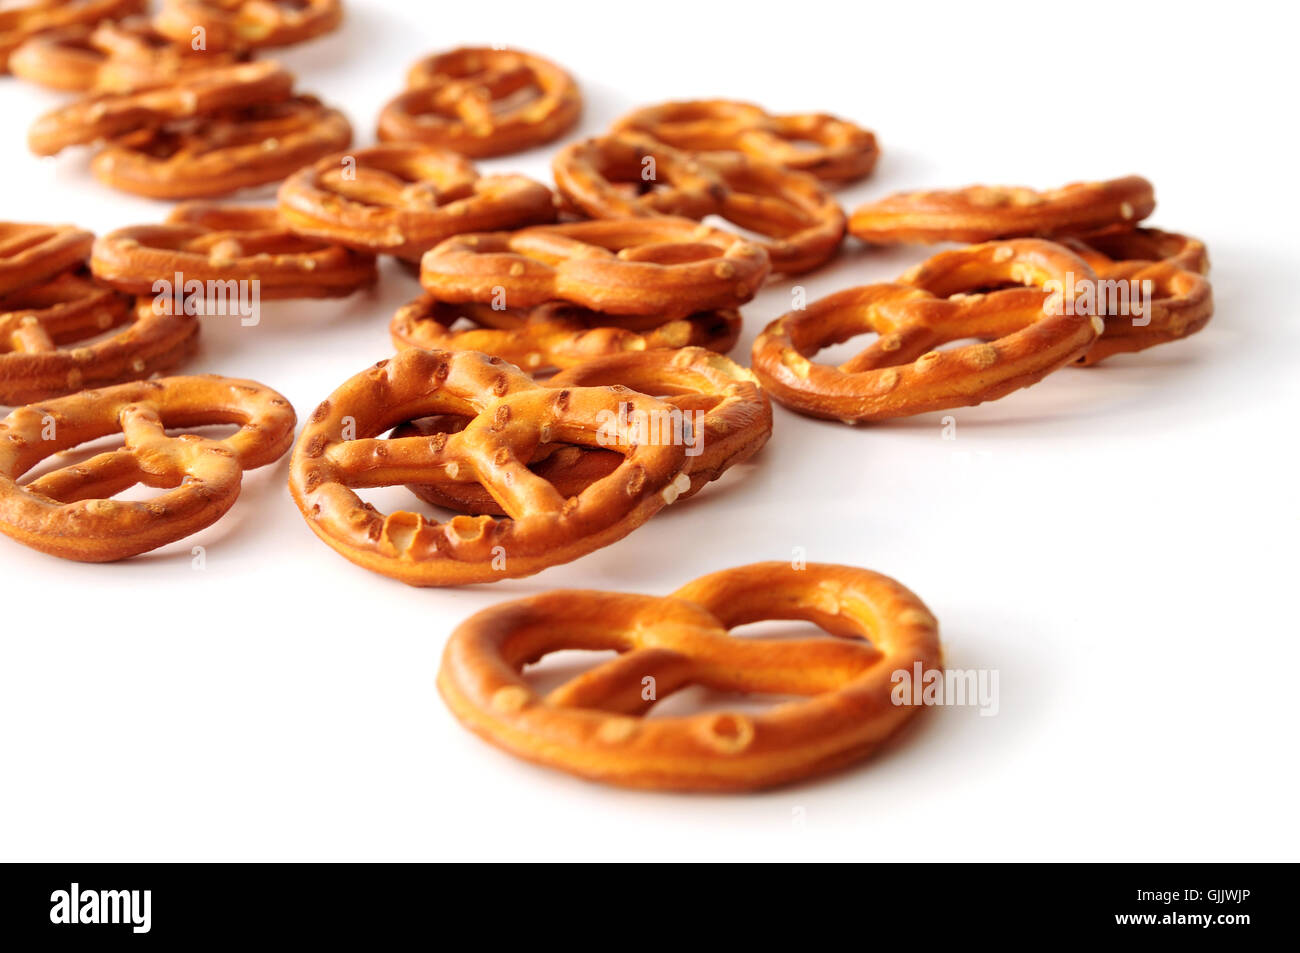 savoury biscuit brown brownish - Stock Image